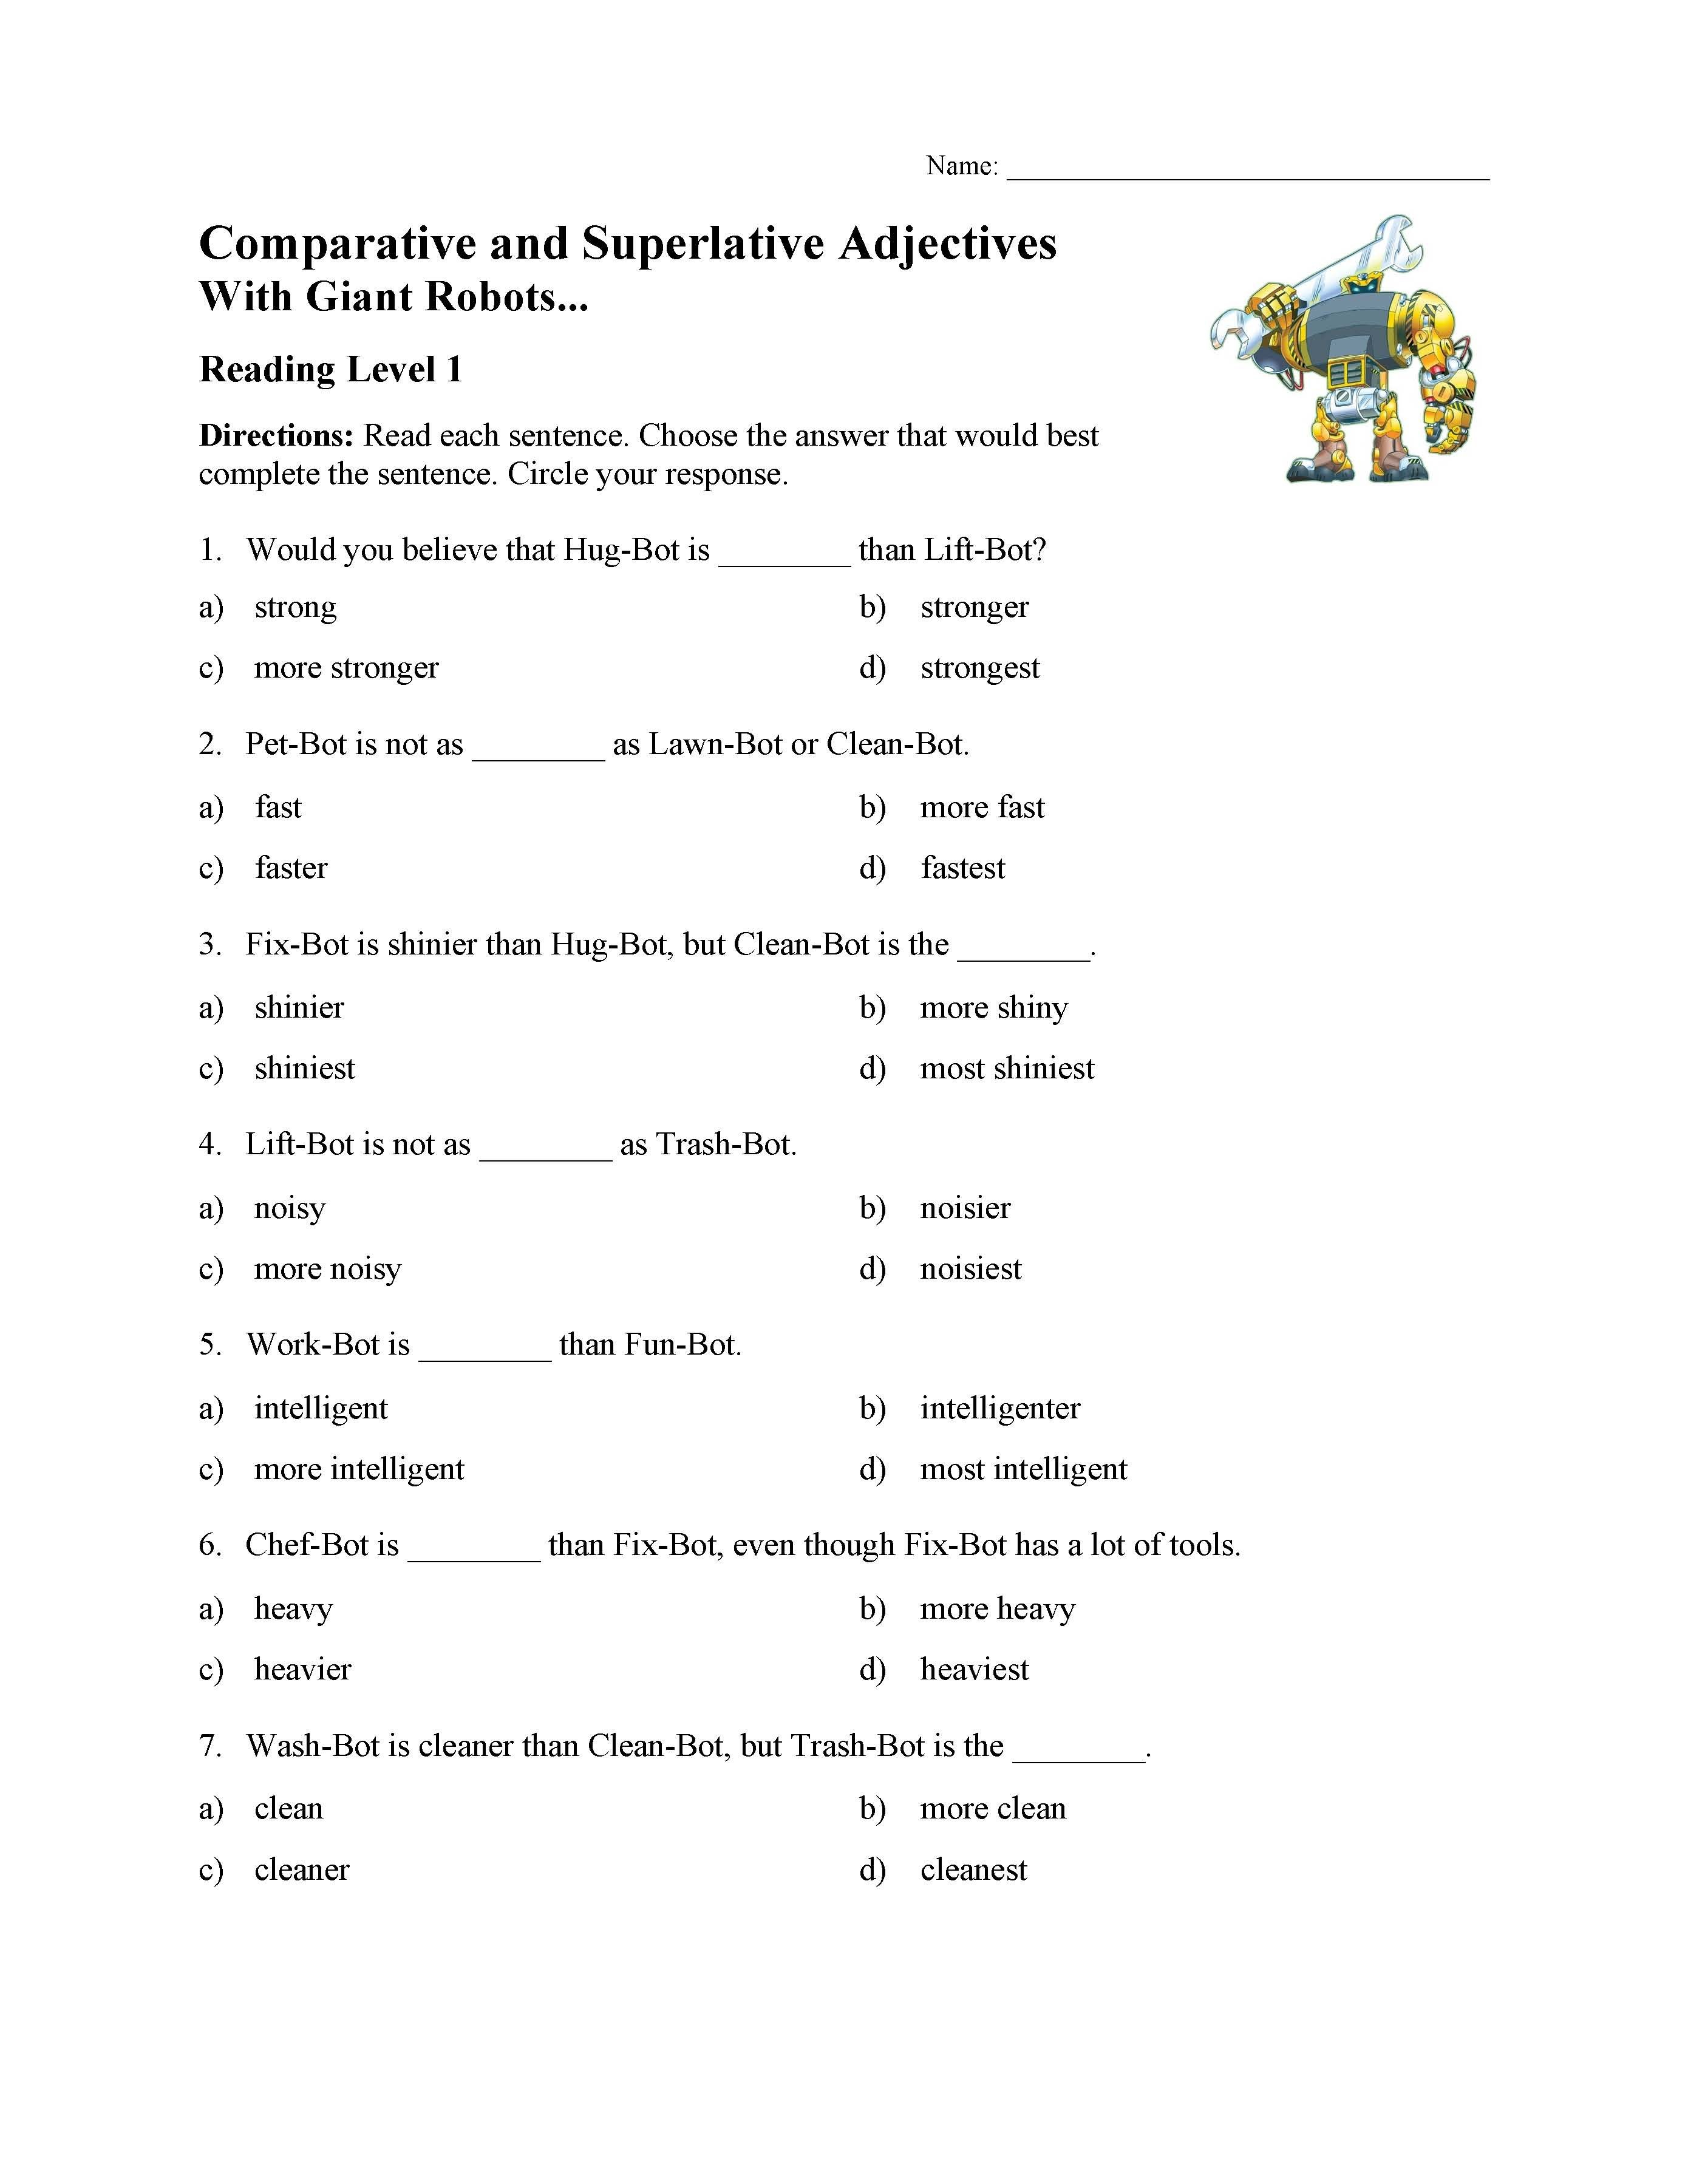 Comparative And Superlative Adjectives Test With Giant Robots Pertaining To Comparative And Superlative Adjectives Worksheet